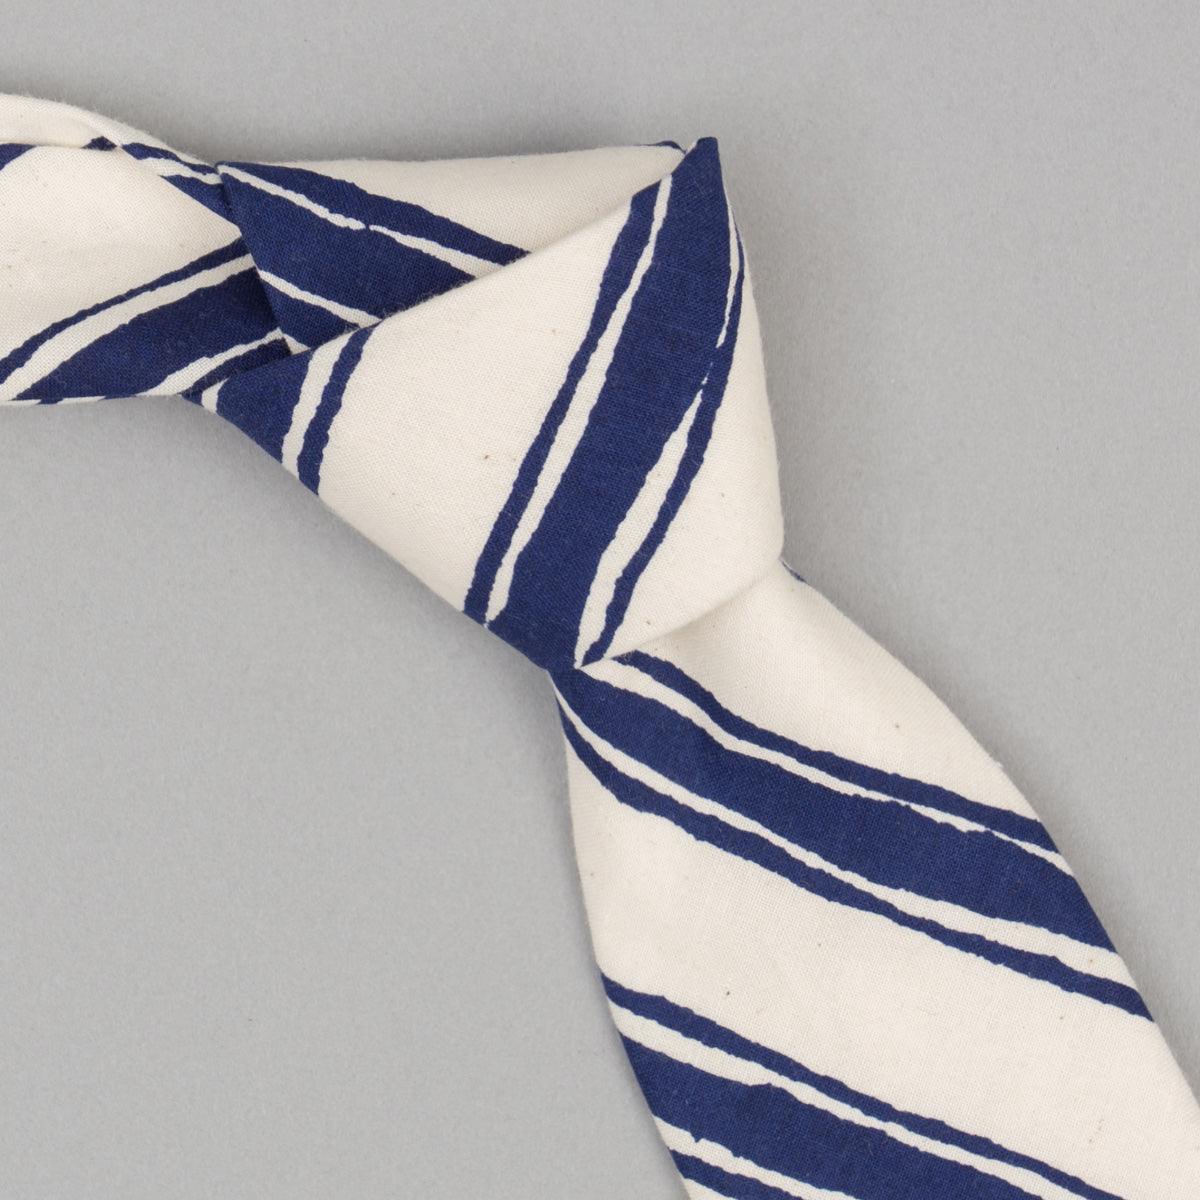 The Hill-Side - Endo Stripes Print Necktie, Natural - PT1-344 - image 1